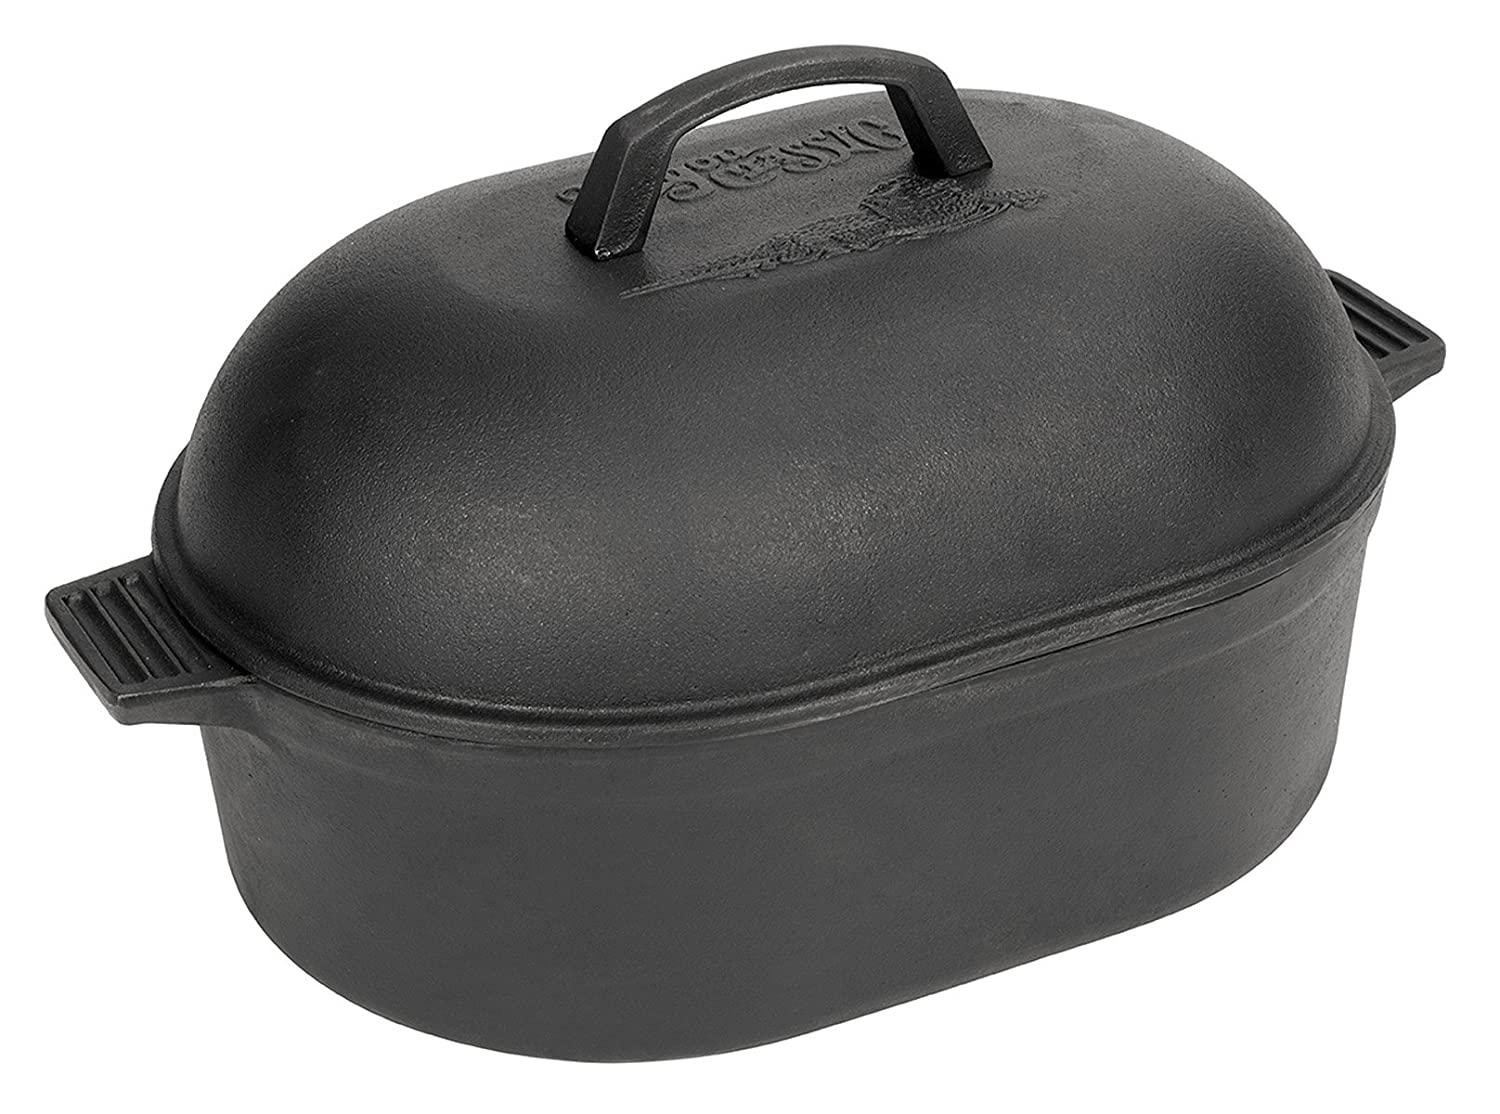 Bayou Classic 12-Quart Cast-Iron Oval Roaster with Domed Lid